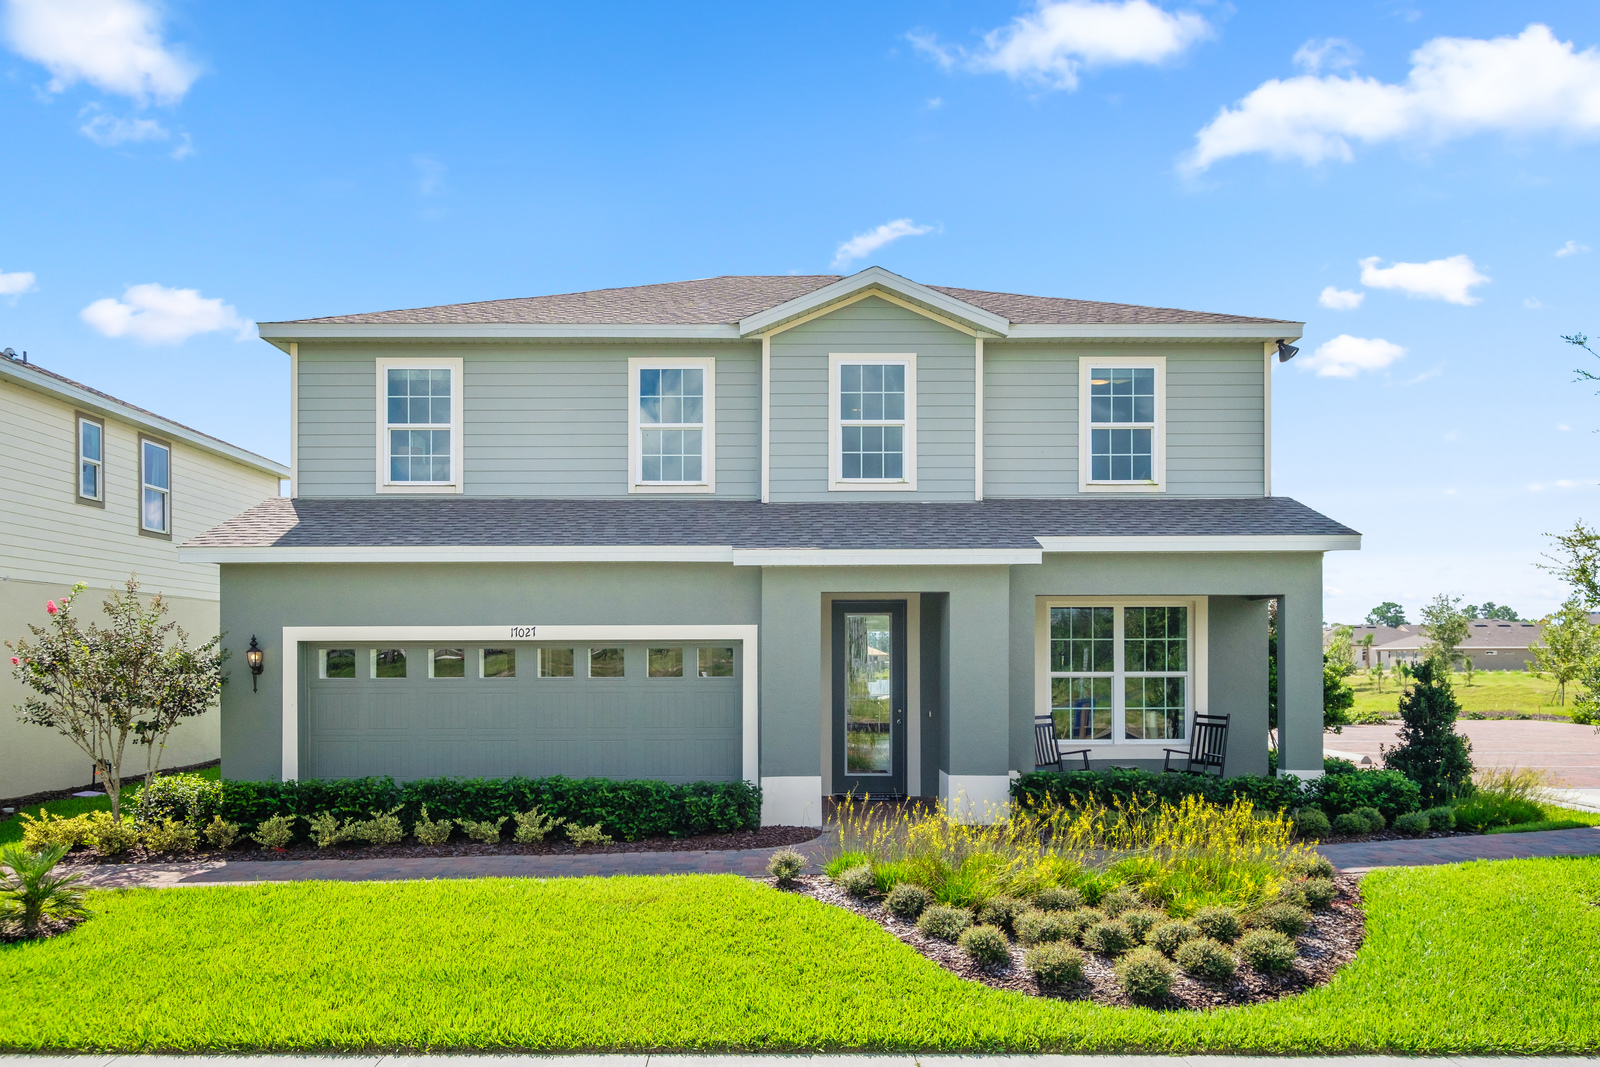 New Homes For Sale At Serenoa In Clermont Fl Within The Clermont